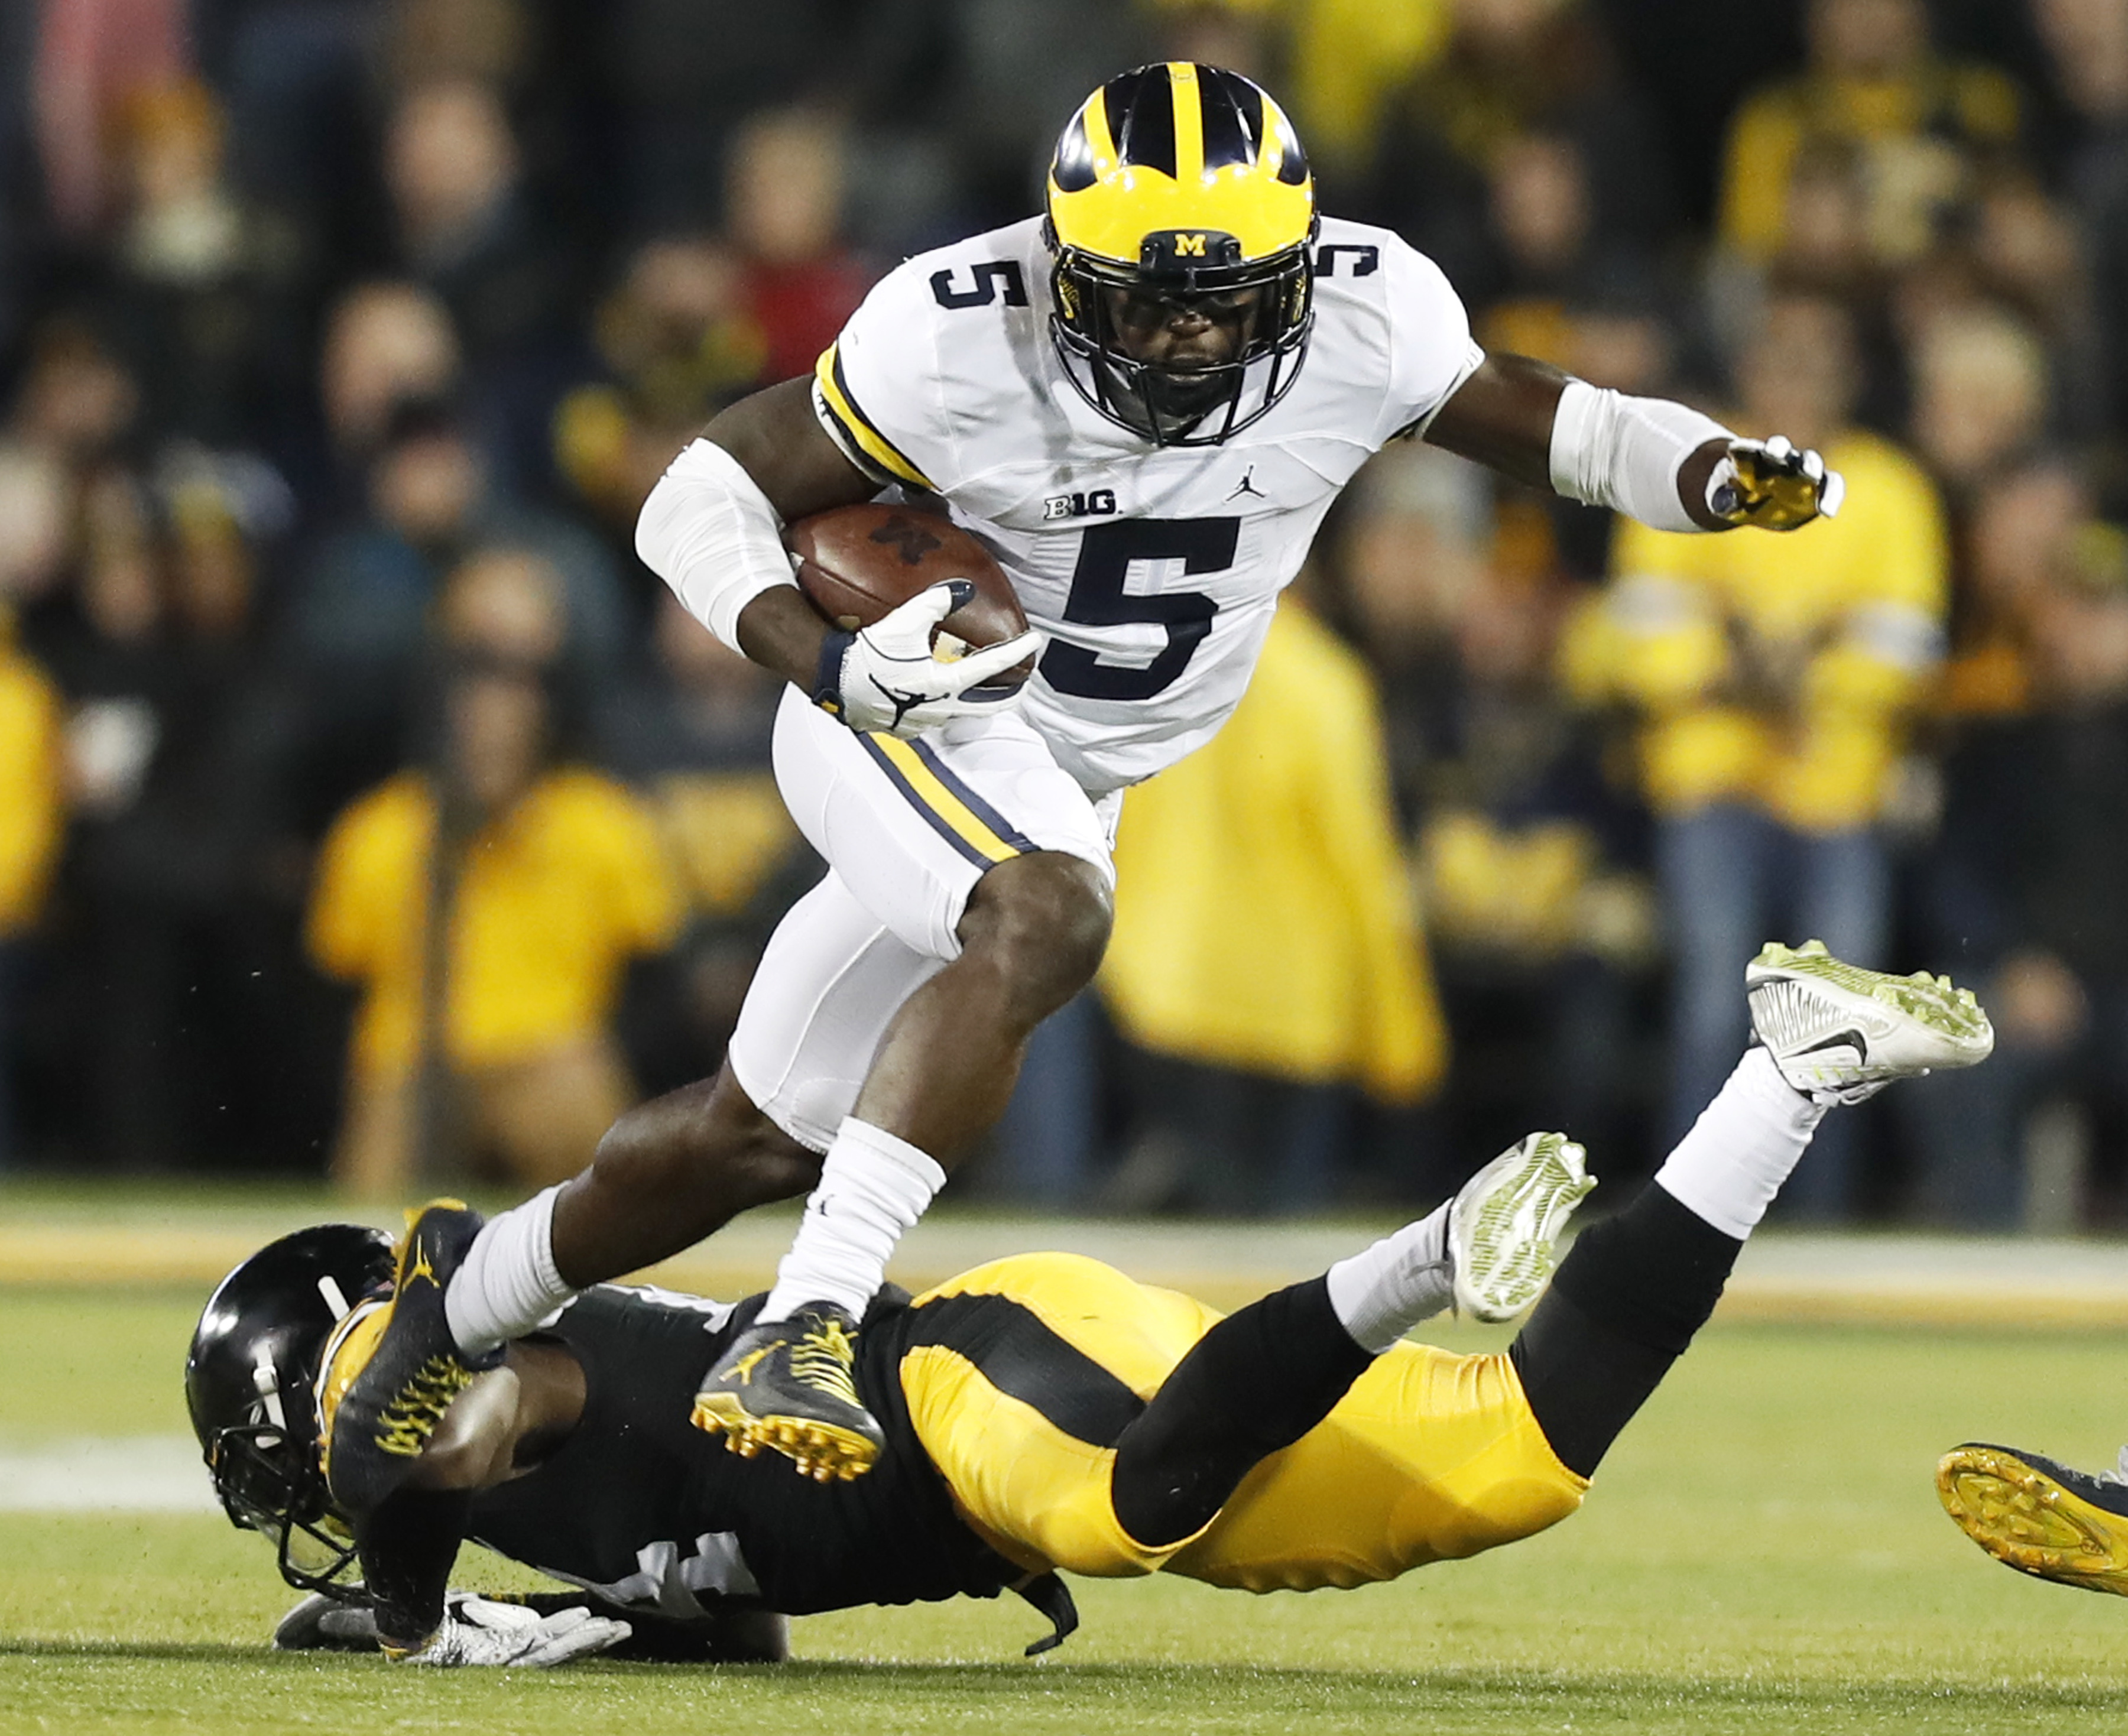 FILE - In this Nov. 12, 2016, file photo, Michigan's Jabrill Peppers (5) breaks a tackle by Iowa defensive back Desmond King, rear, during the first half of an NCAA college football game, in Iowa City, Iowa. To upset No. 2 Ohio State and win at the Horses